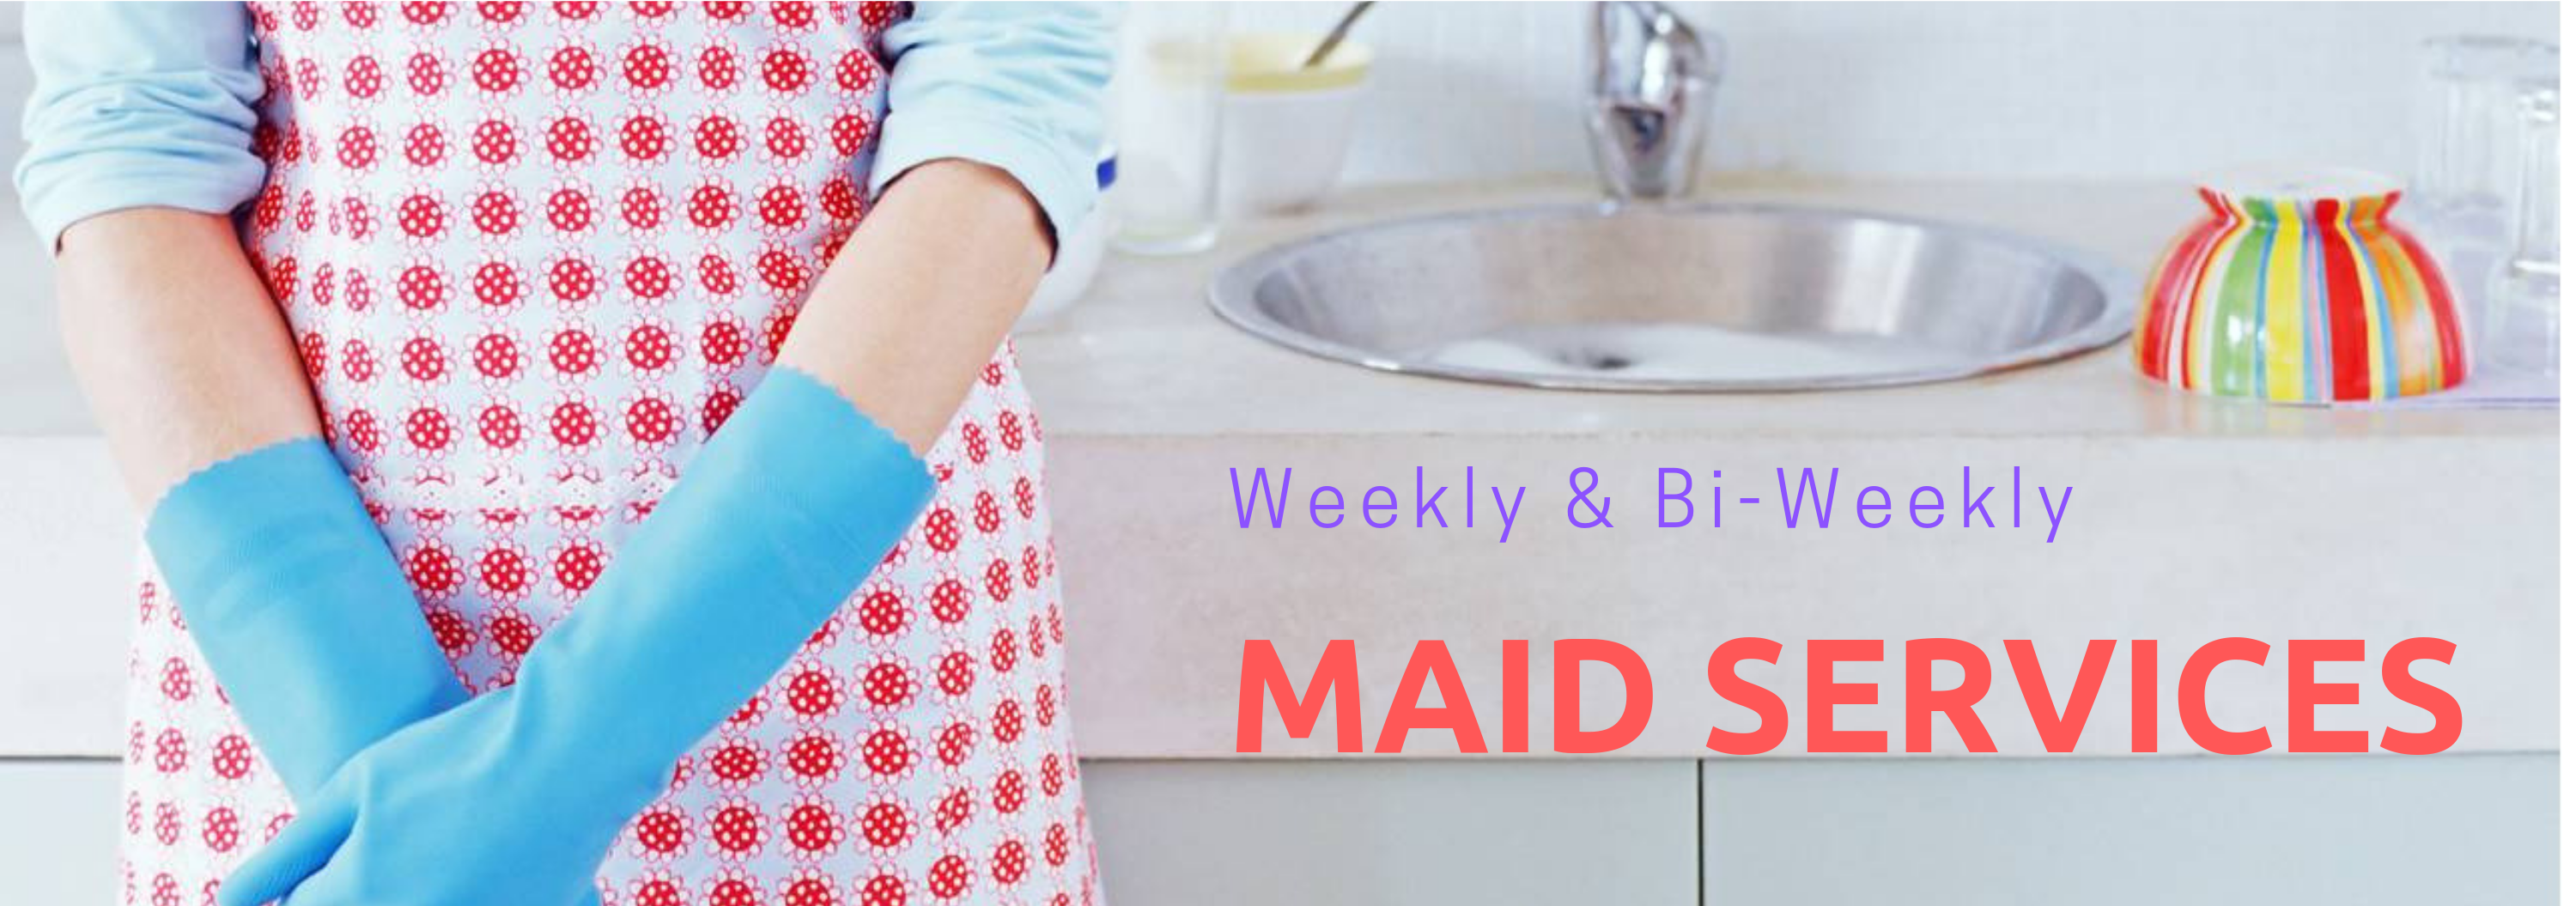 Weekly & Bi-Weekly cleaning service in Plano Tx